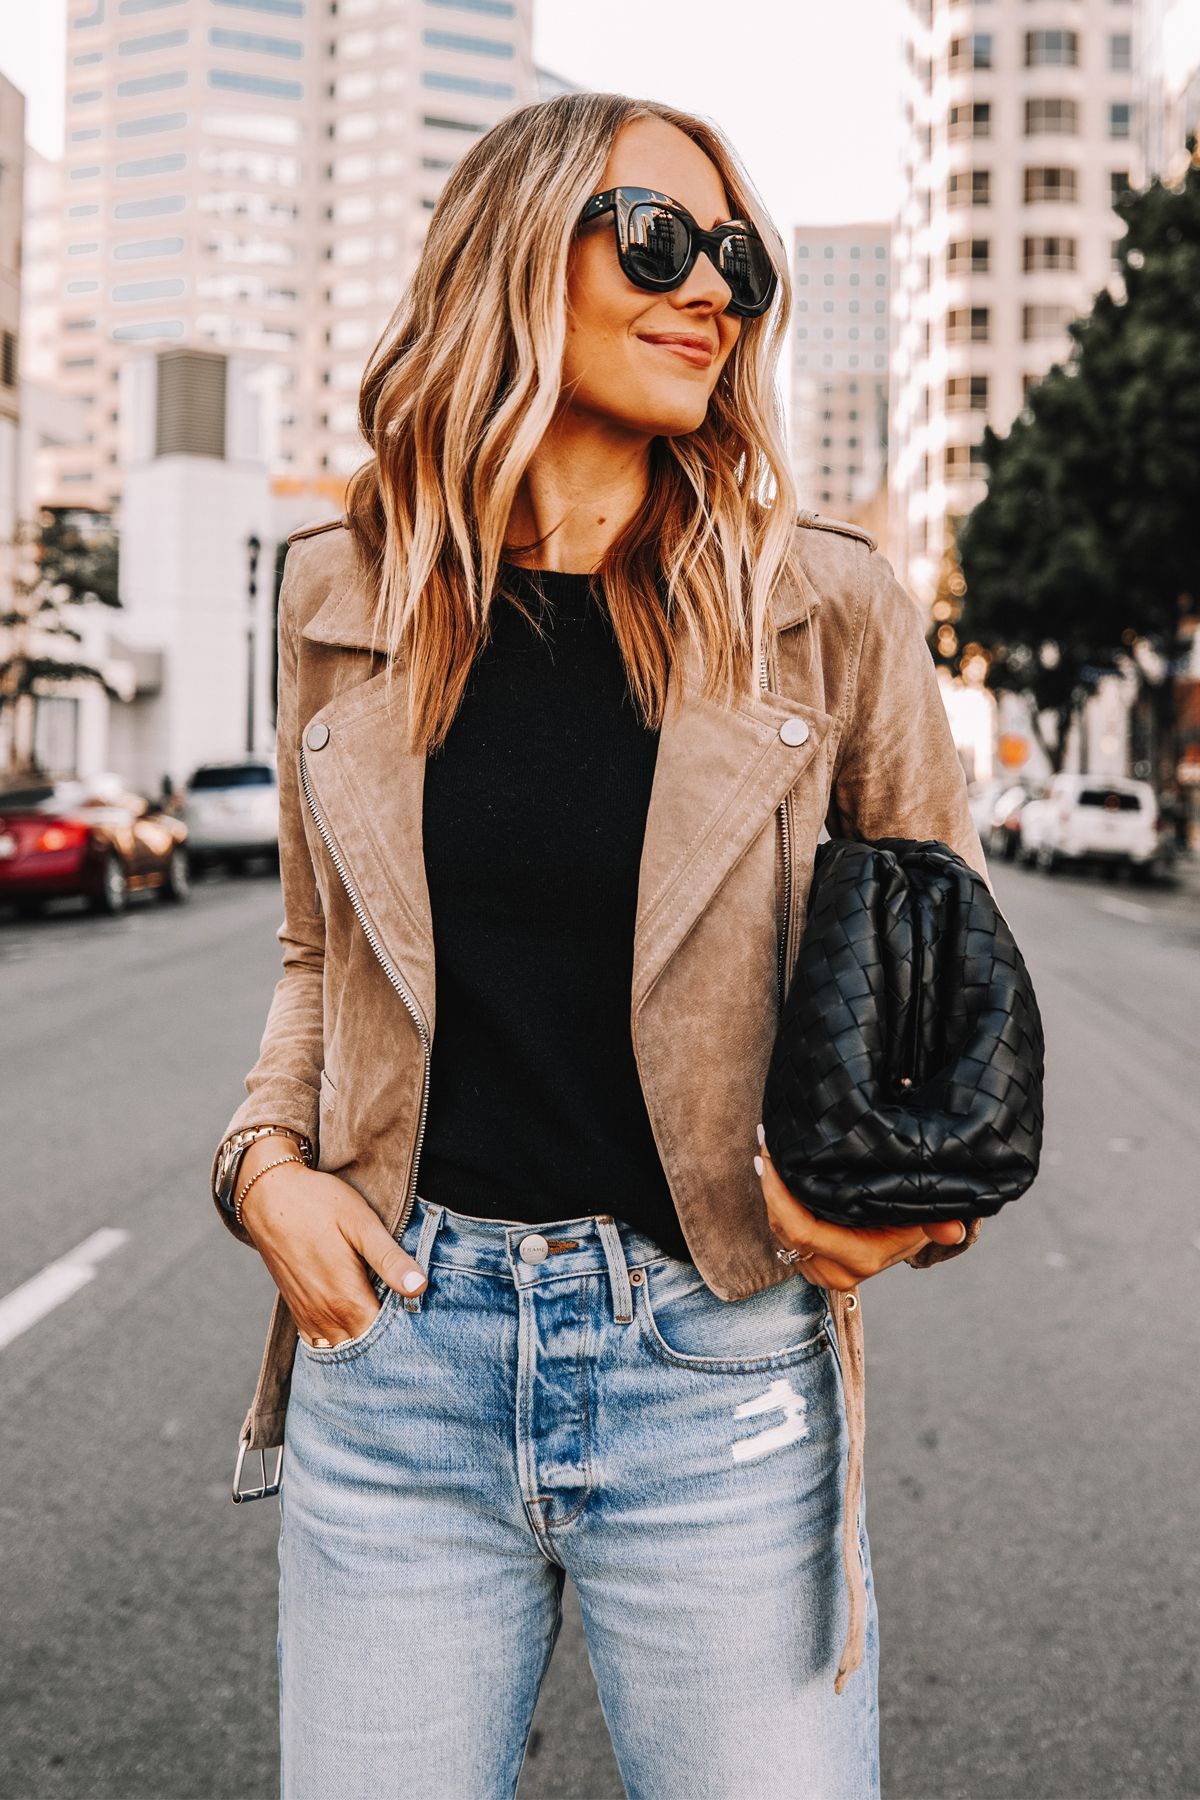 Suede Moto Jacket Ripped Jeans Outfit Jeans And Heels Date Night Look Fashion Jackson Fashion Suede Moto Jacket [ 1800 x 1200 Pixel ]